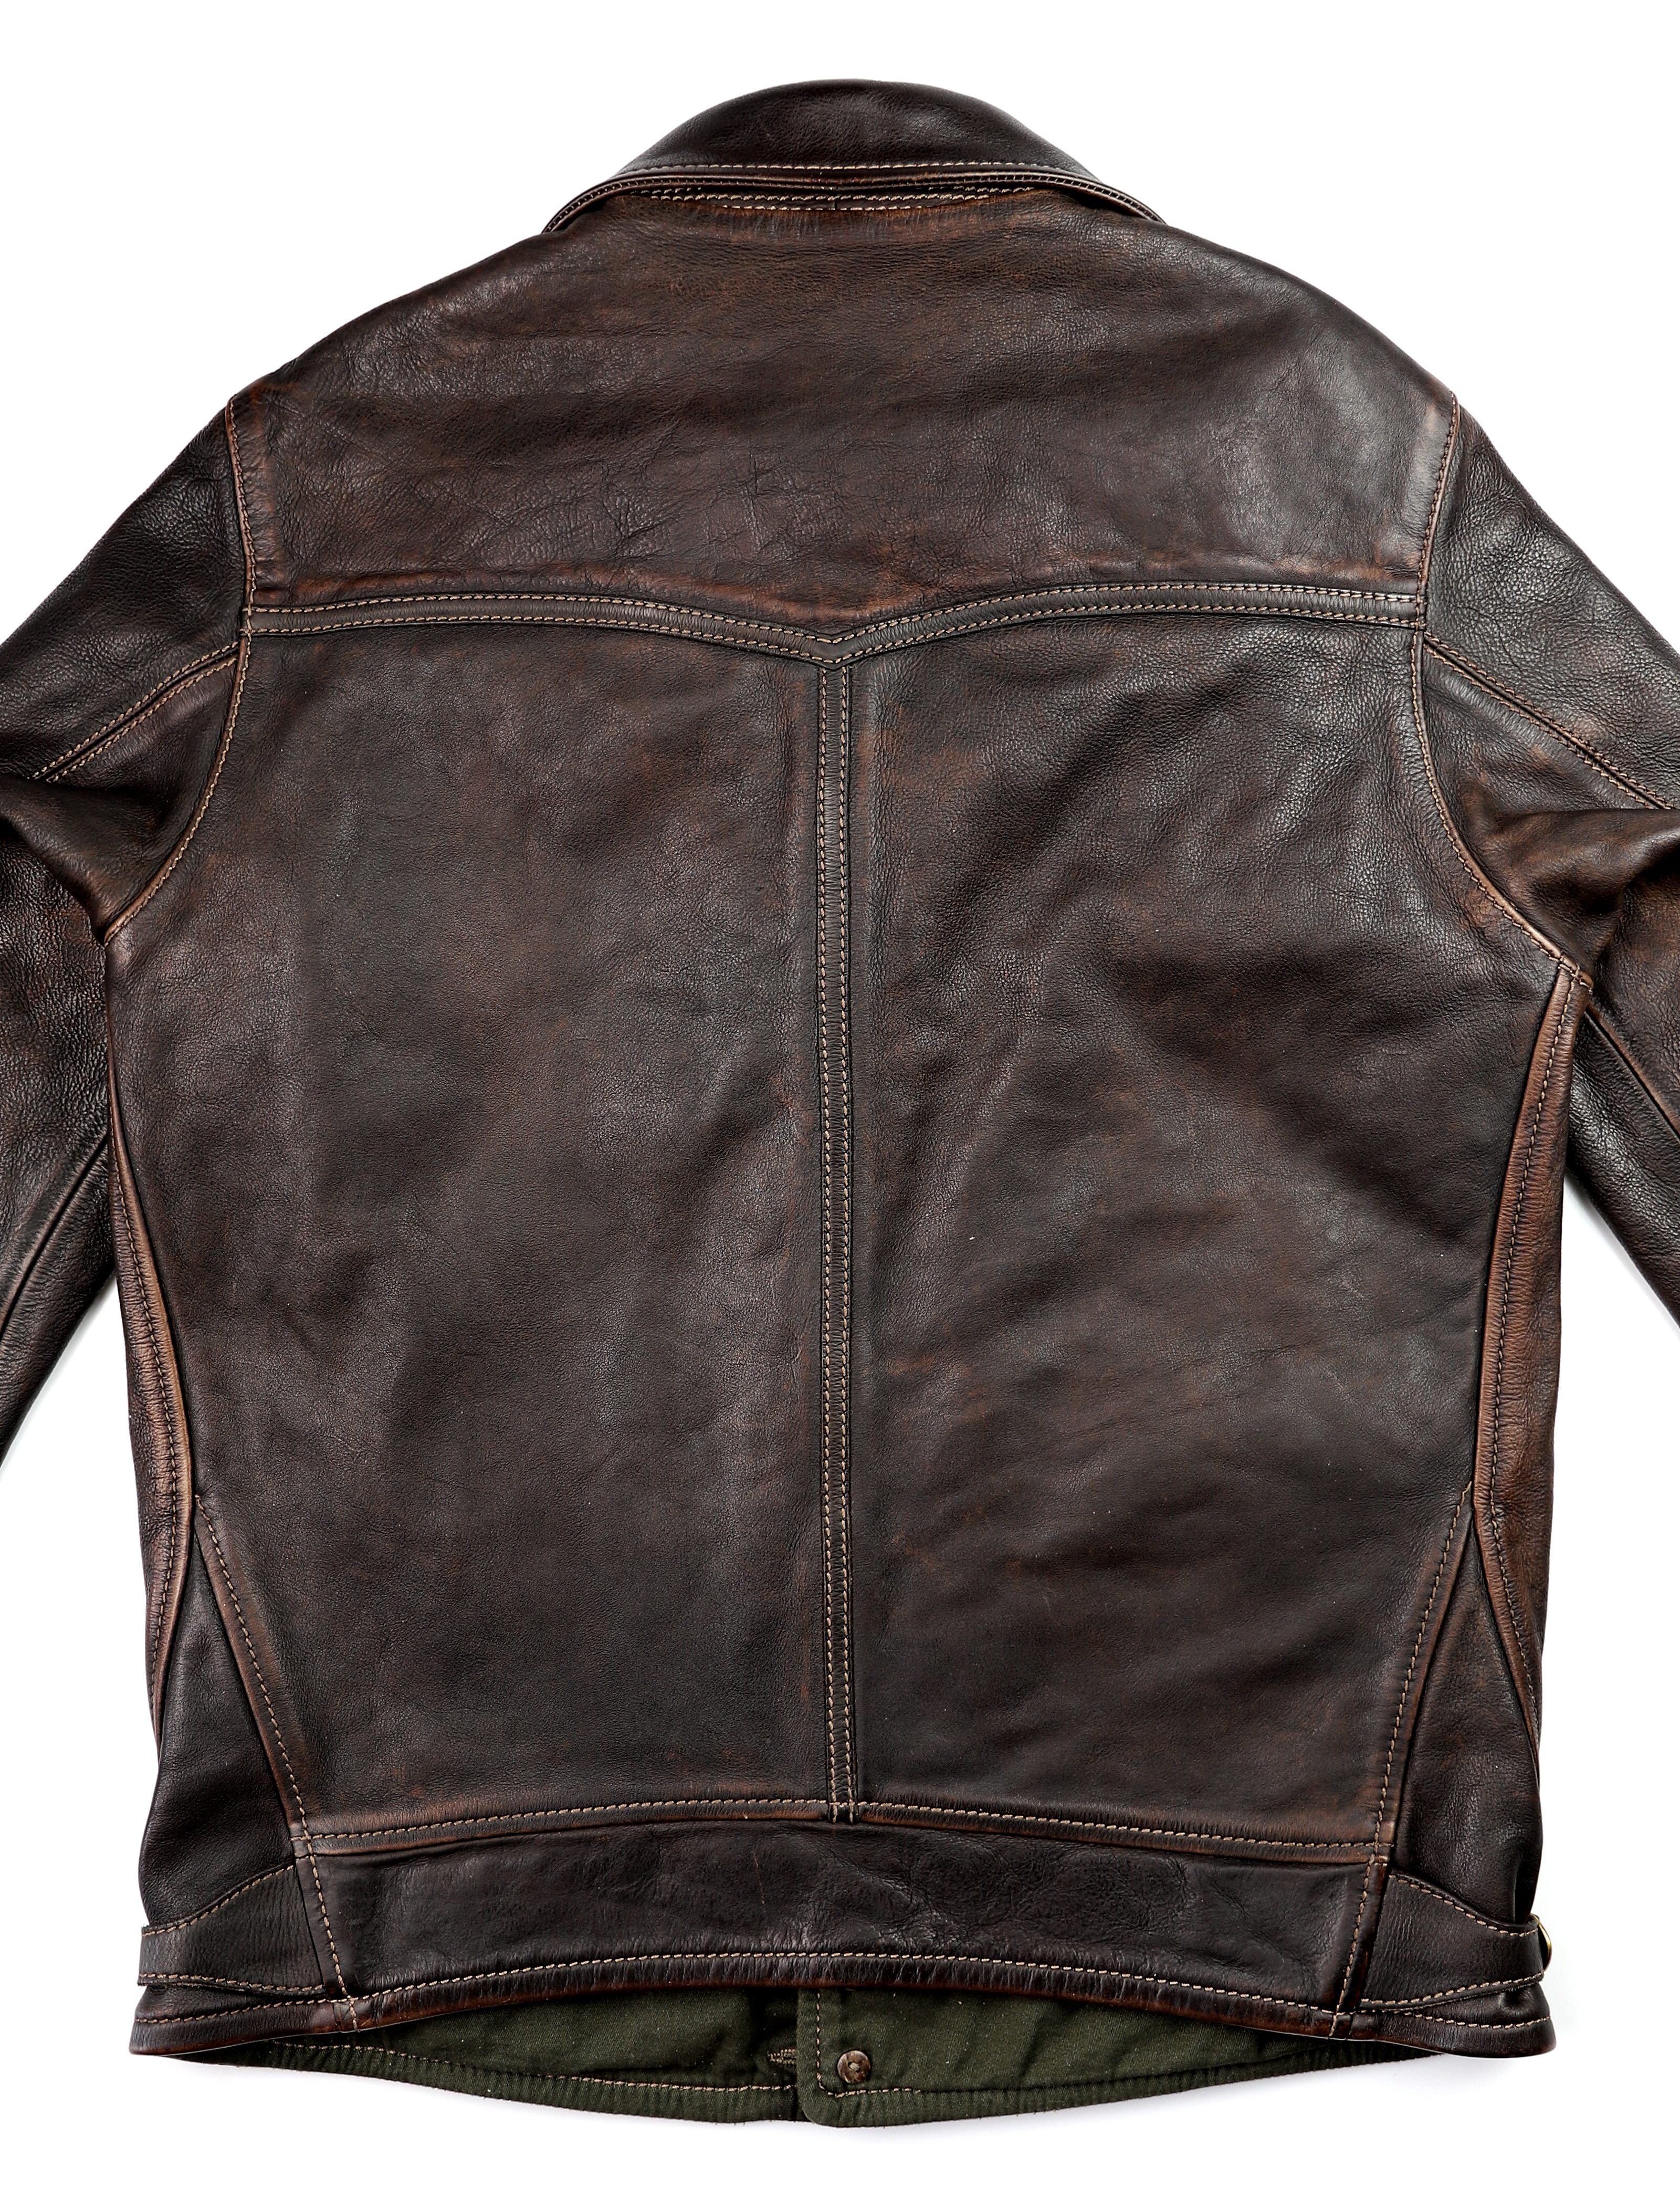 Thedi Niko Button-Up Hand-Dyed Brown Cowhide JG1 back.jpg